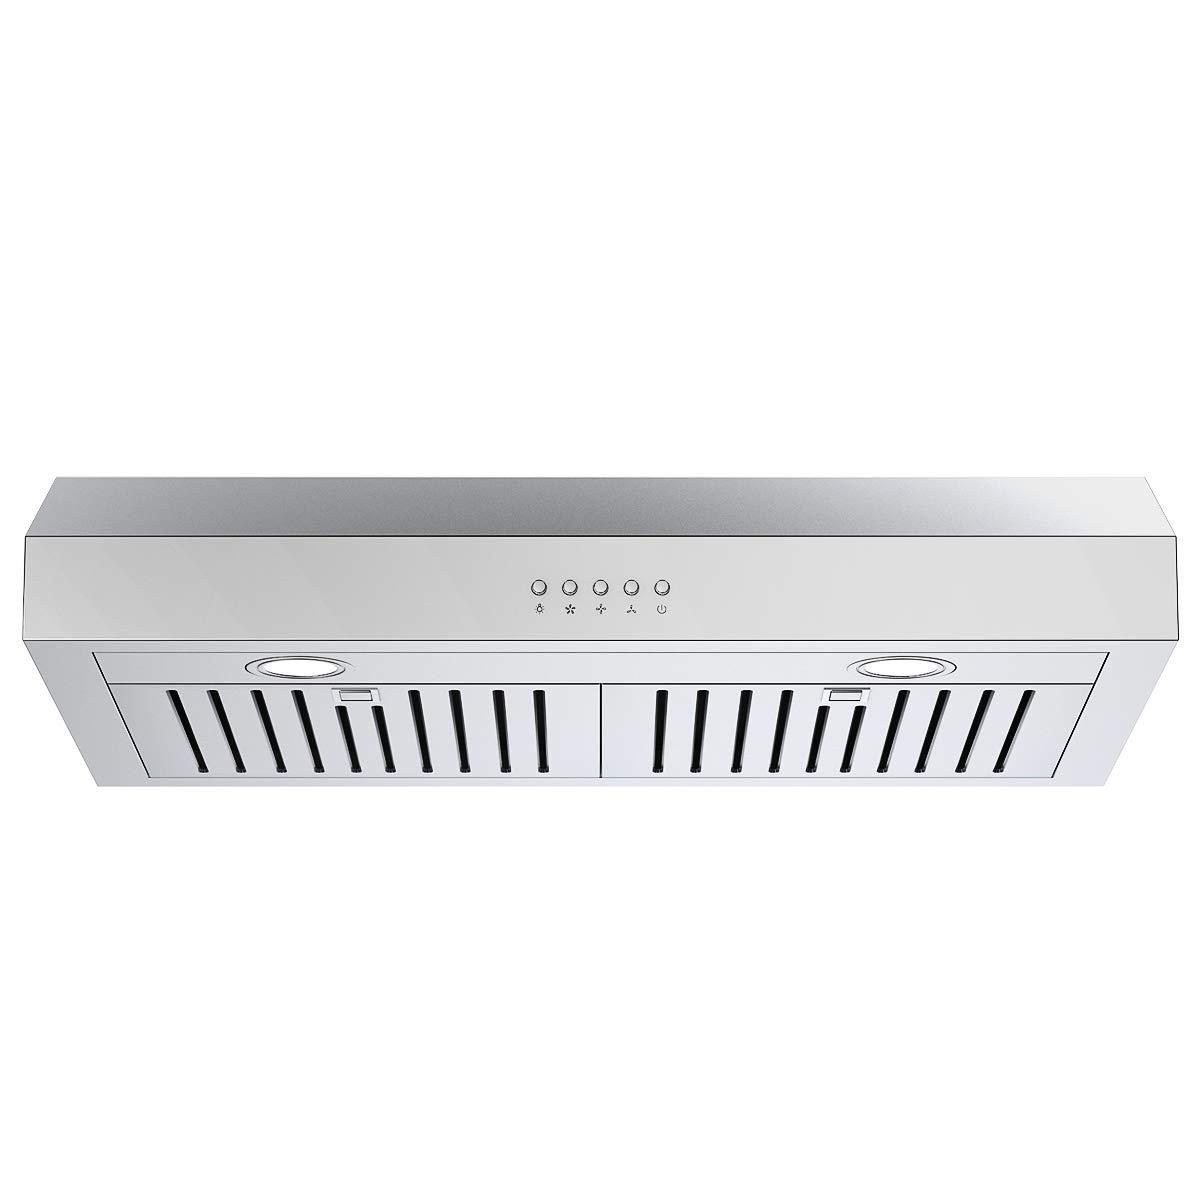 COSTWAY Under-Cabinet Range Hood, 30-Inch 412-CFM, 3-Speed, LED Light Wireless Kitchen Exhaust Fan, Ducted Convertible Duct, Contemporary Design, Reusable Filter, Stainless Steel by COSTWAY